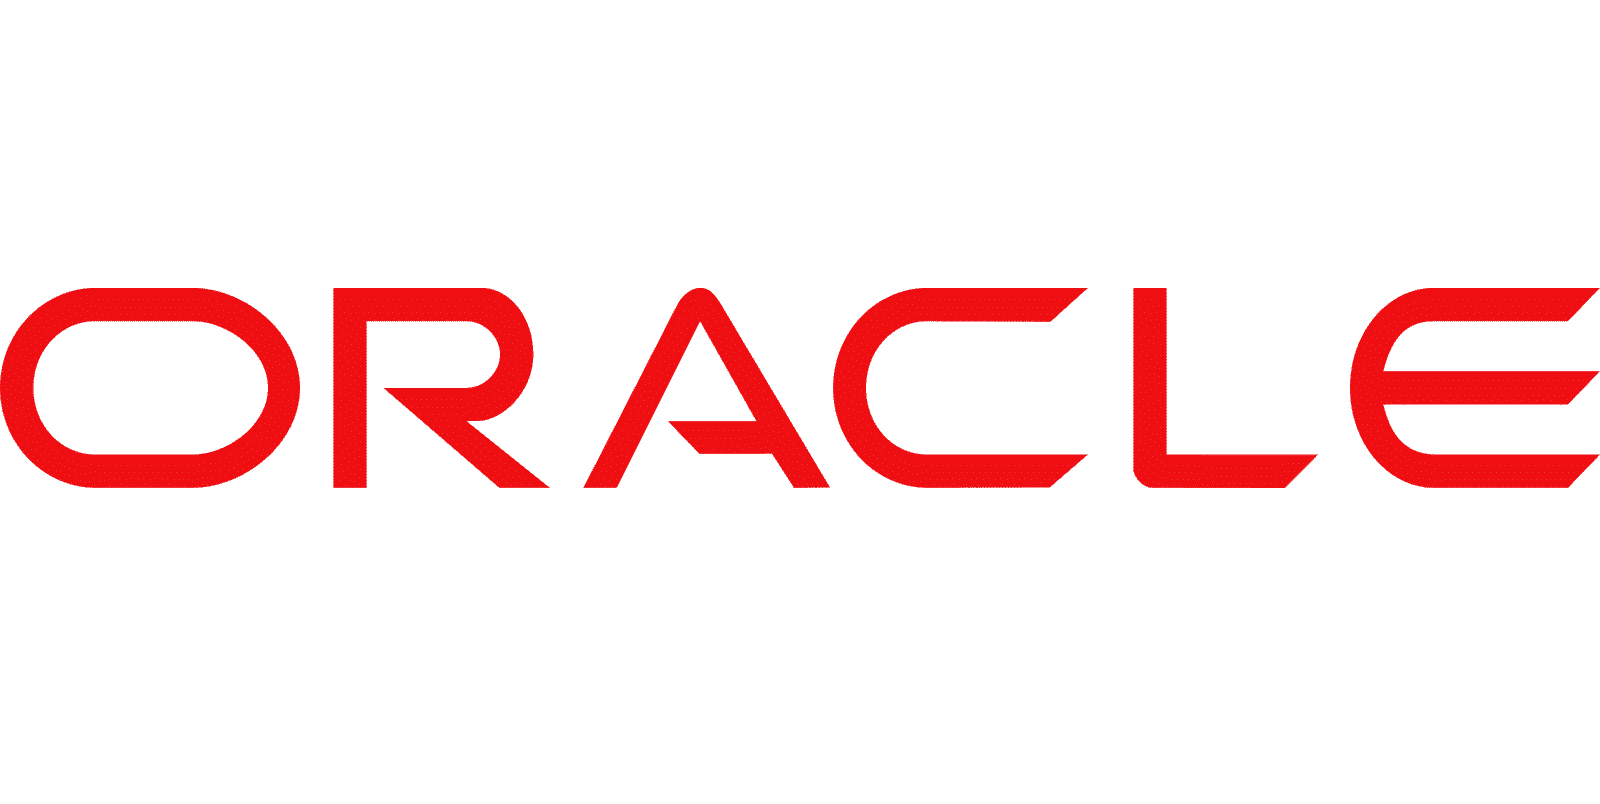 Oracle's homepage